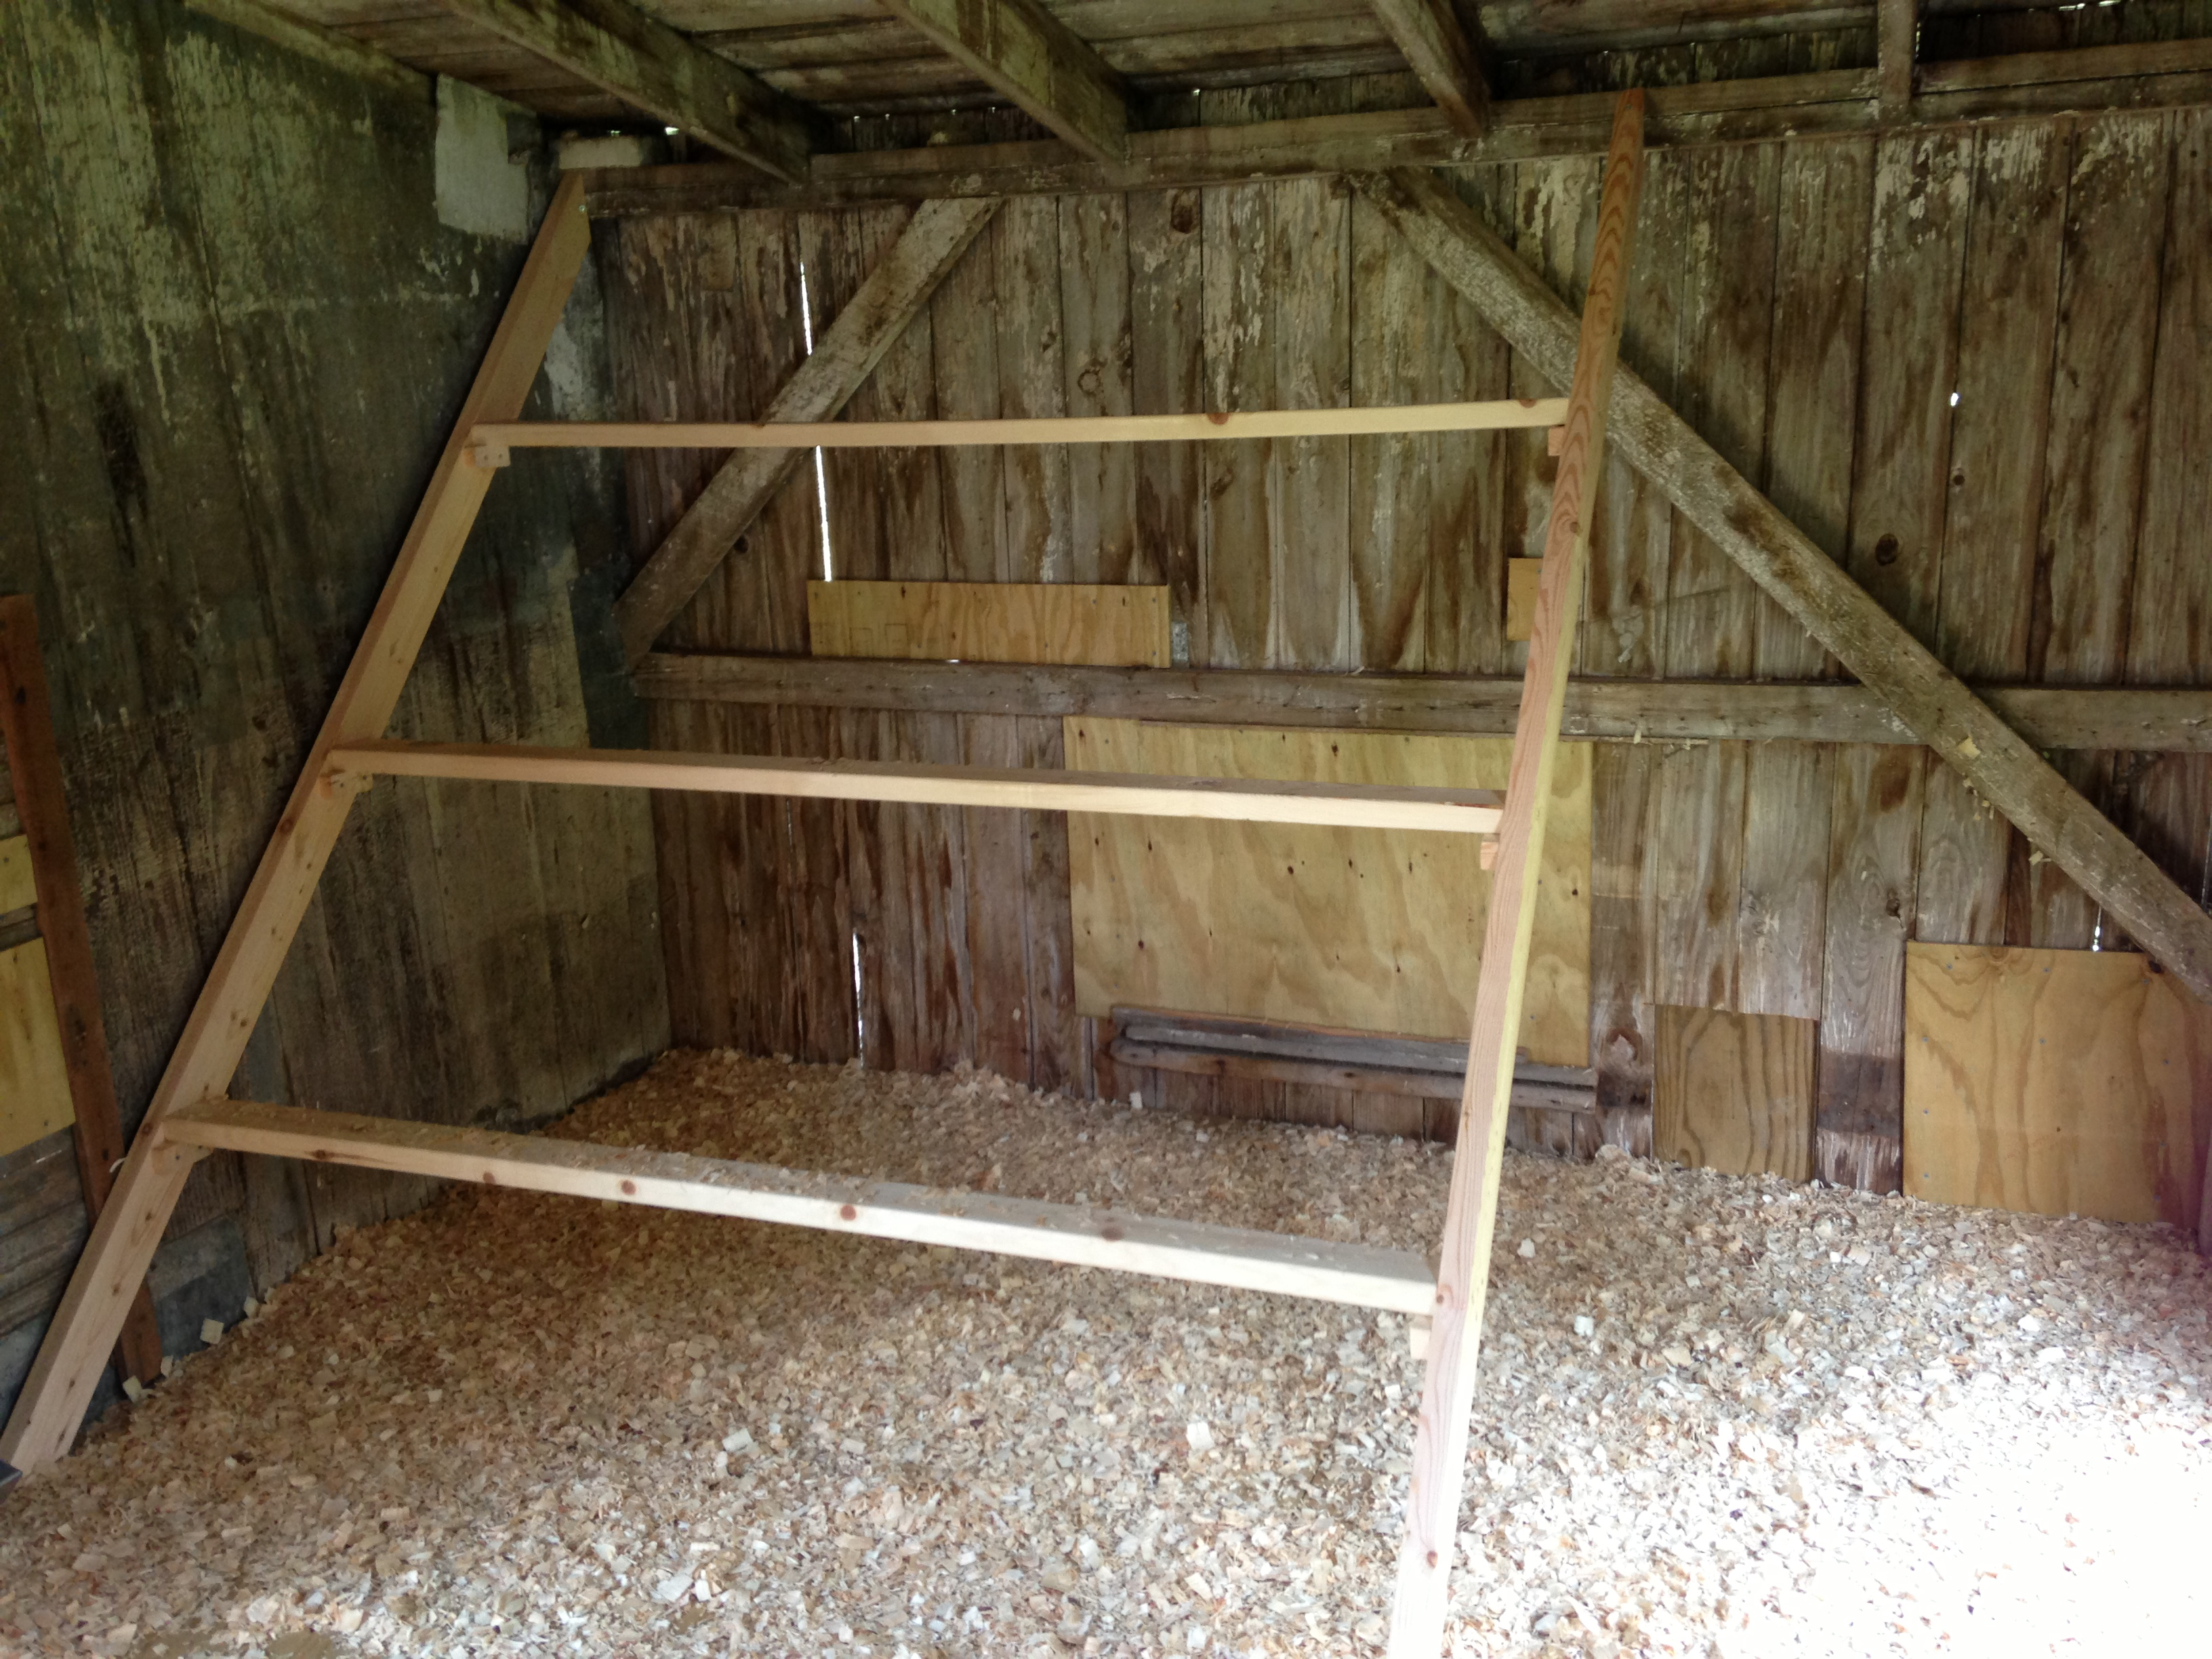 Bodem Kippenren Chicken Coops Roost Open Bottom Pictures To Pin On